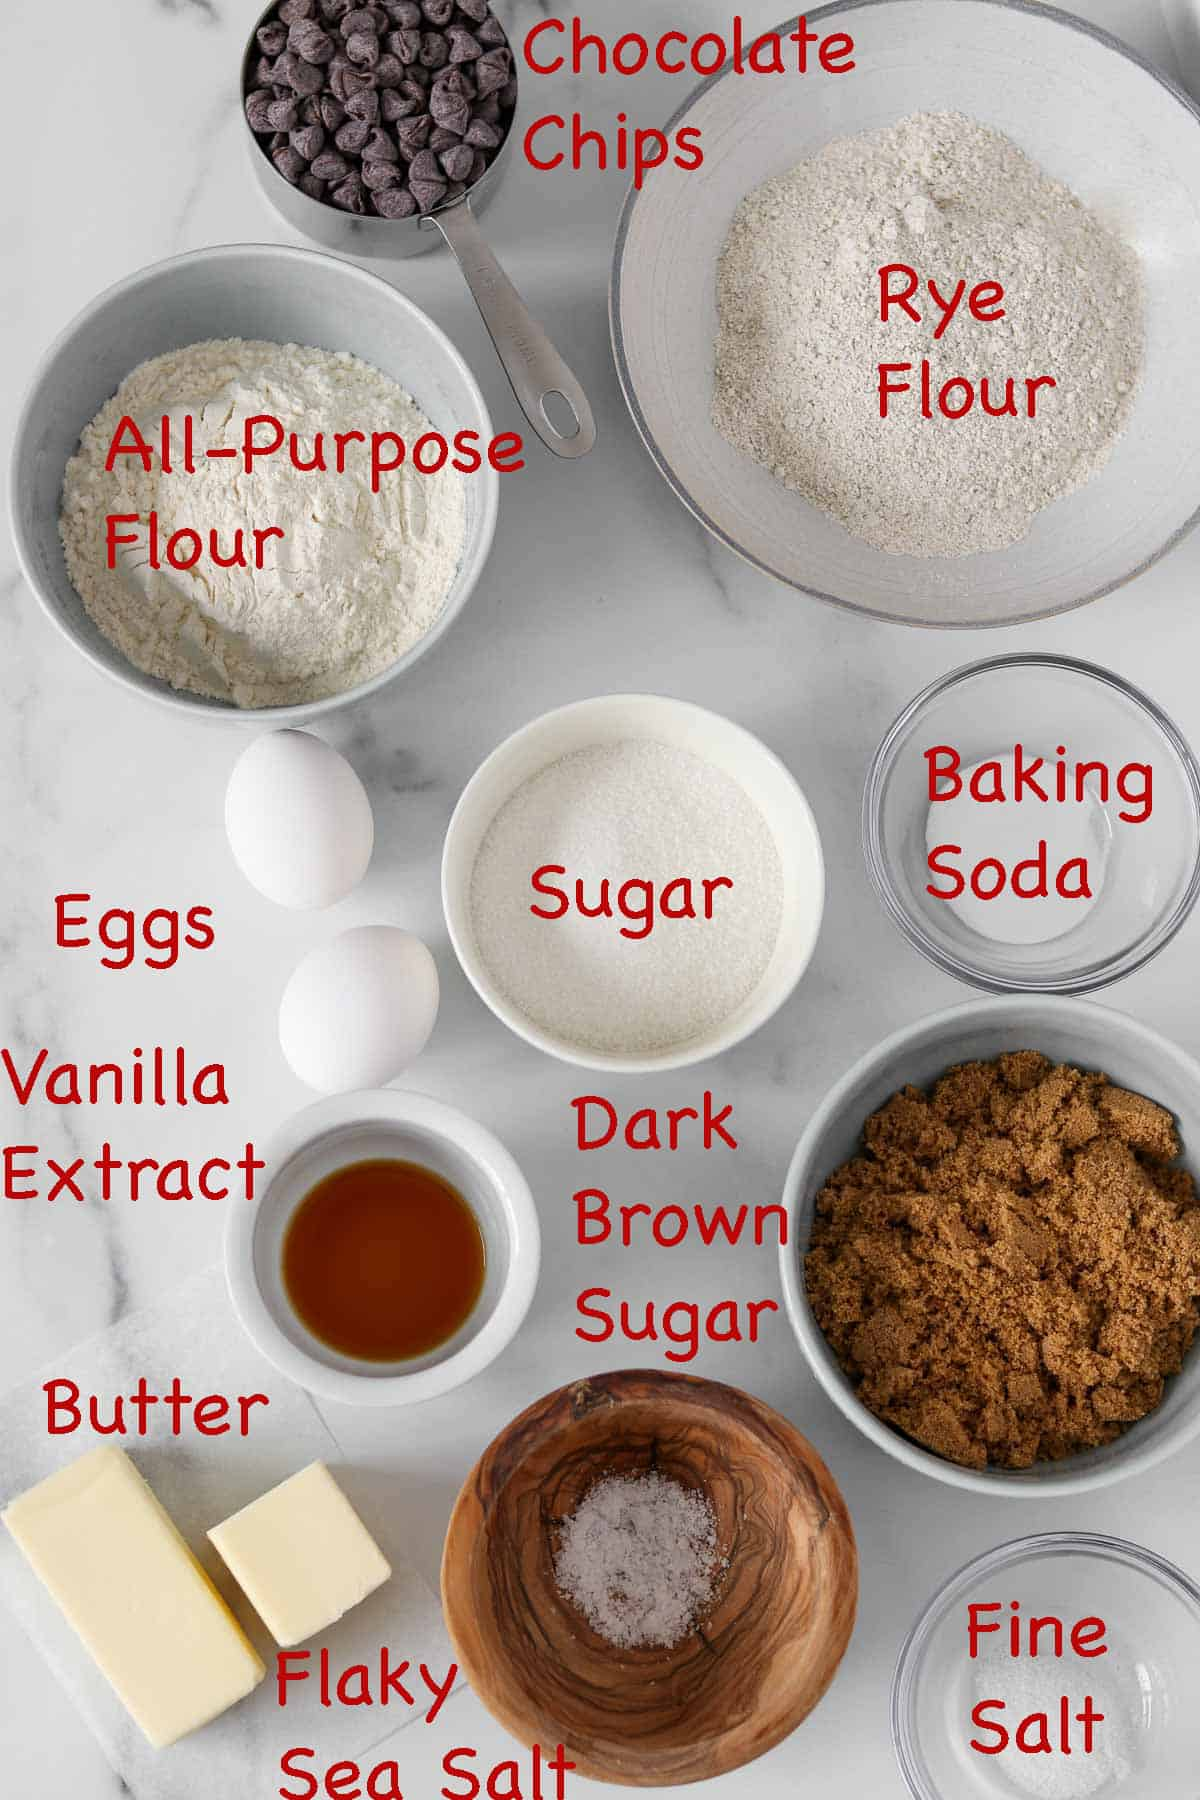 Labeled ingredients for Rye Chocolate Chip Cookies.